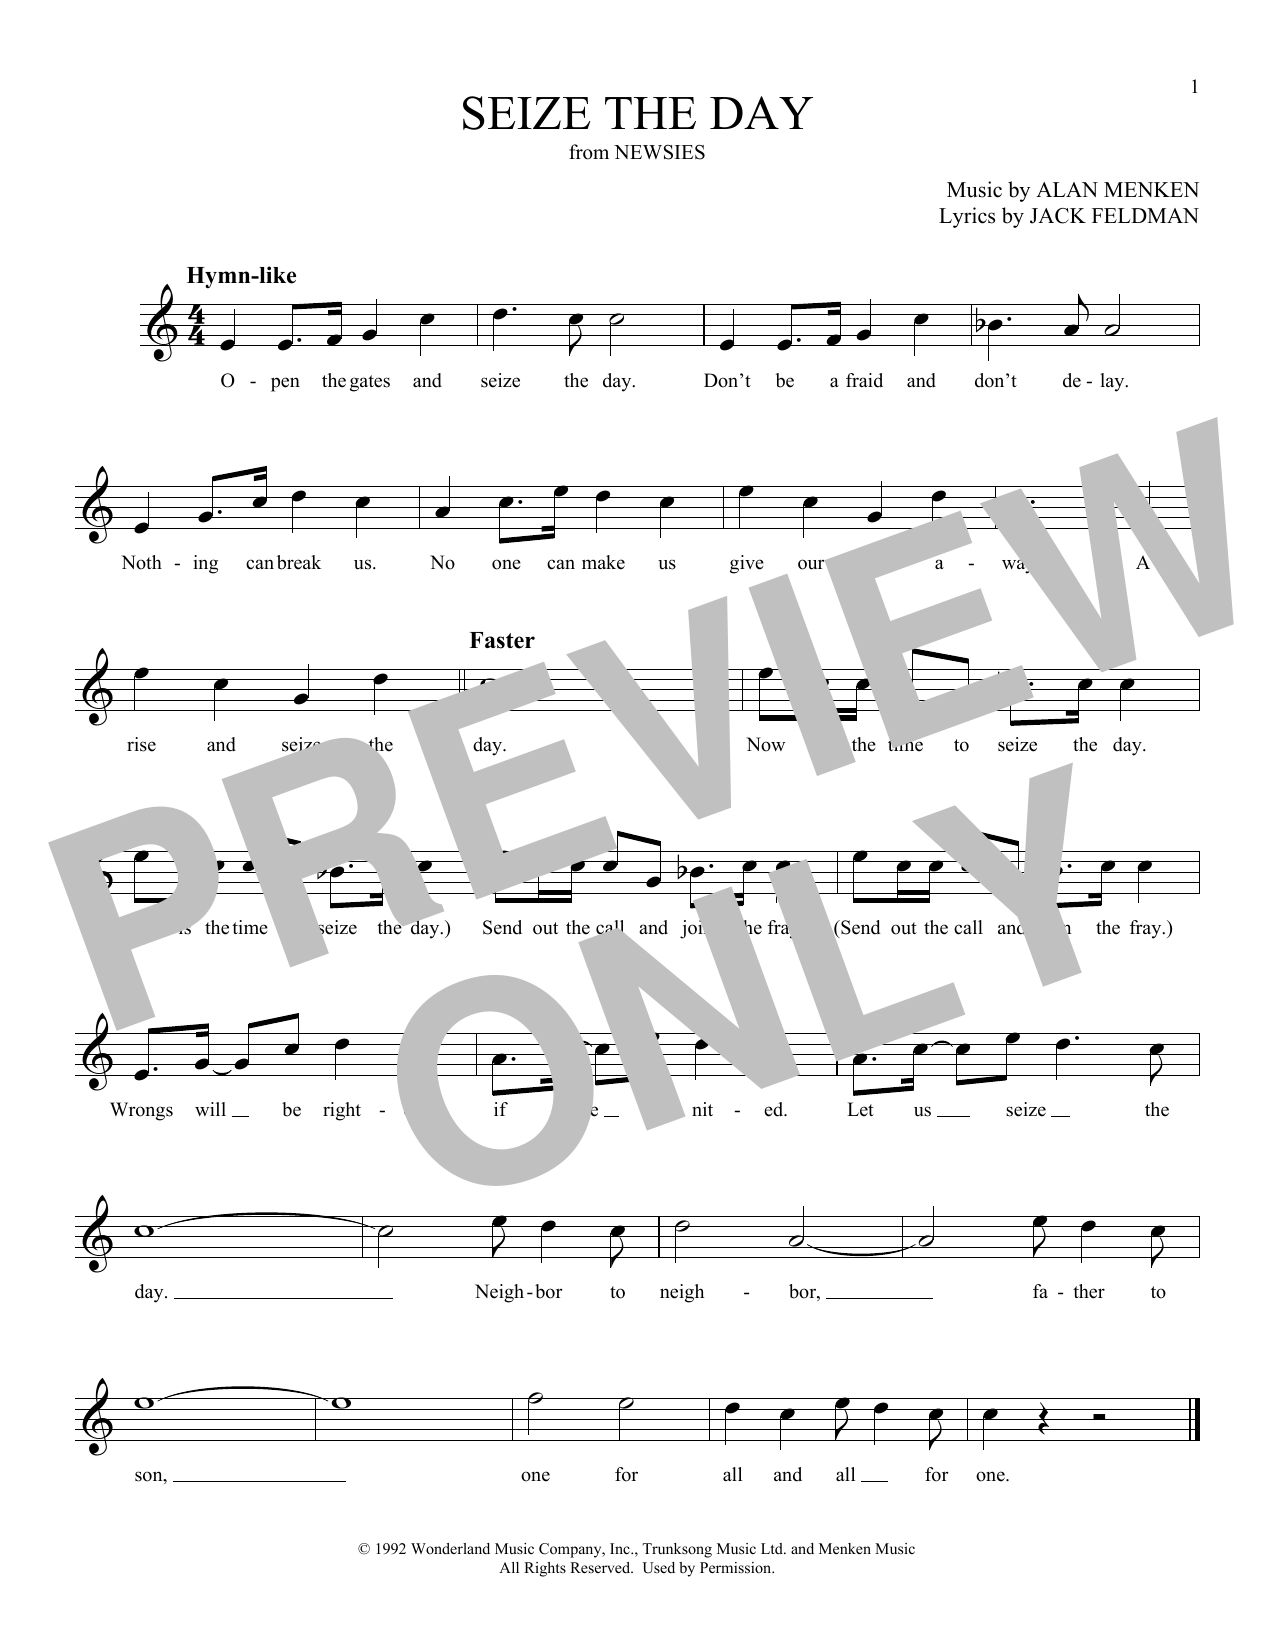 Alan Menken Seize The Day (from Newsies) sheet music notes and chords. Download Printable PDF.